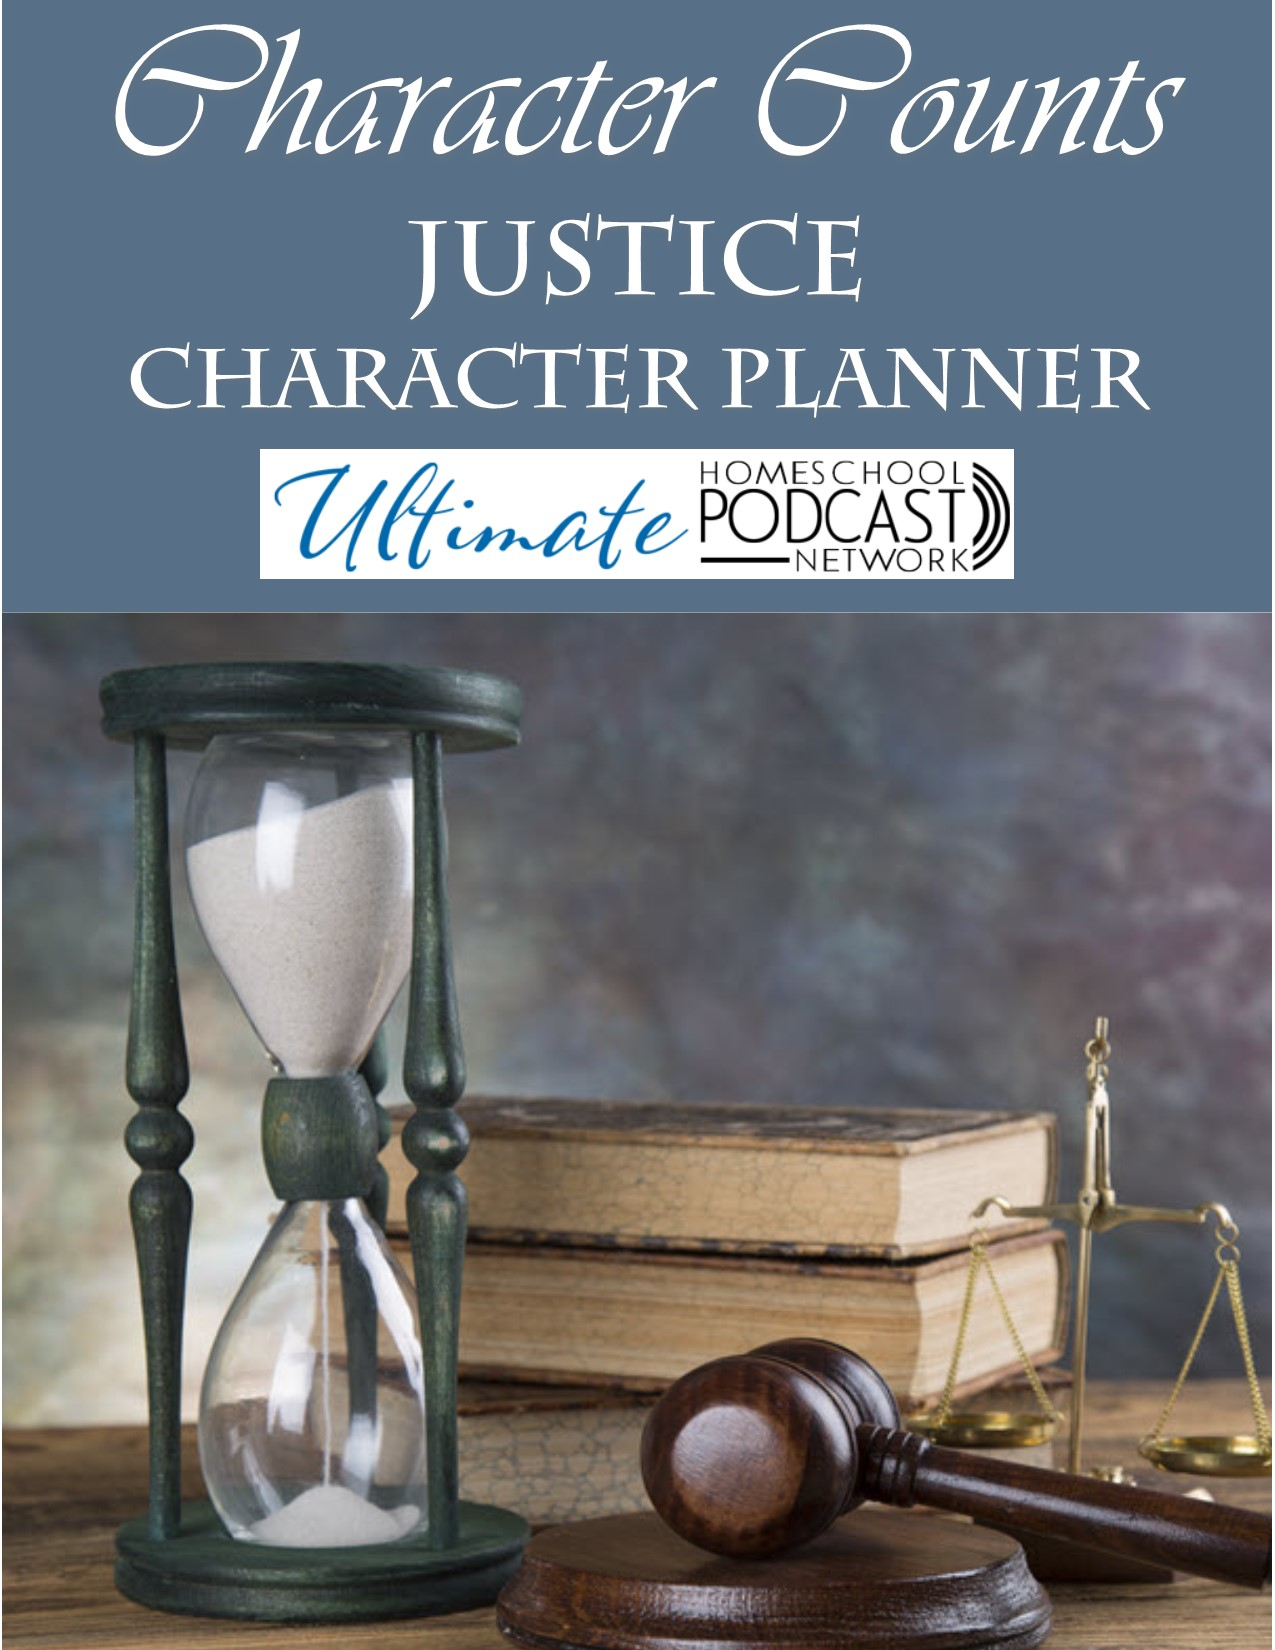 justice character planner text on image of books and hour glass and gavel.